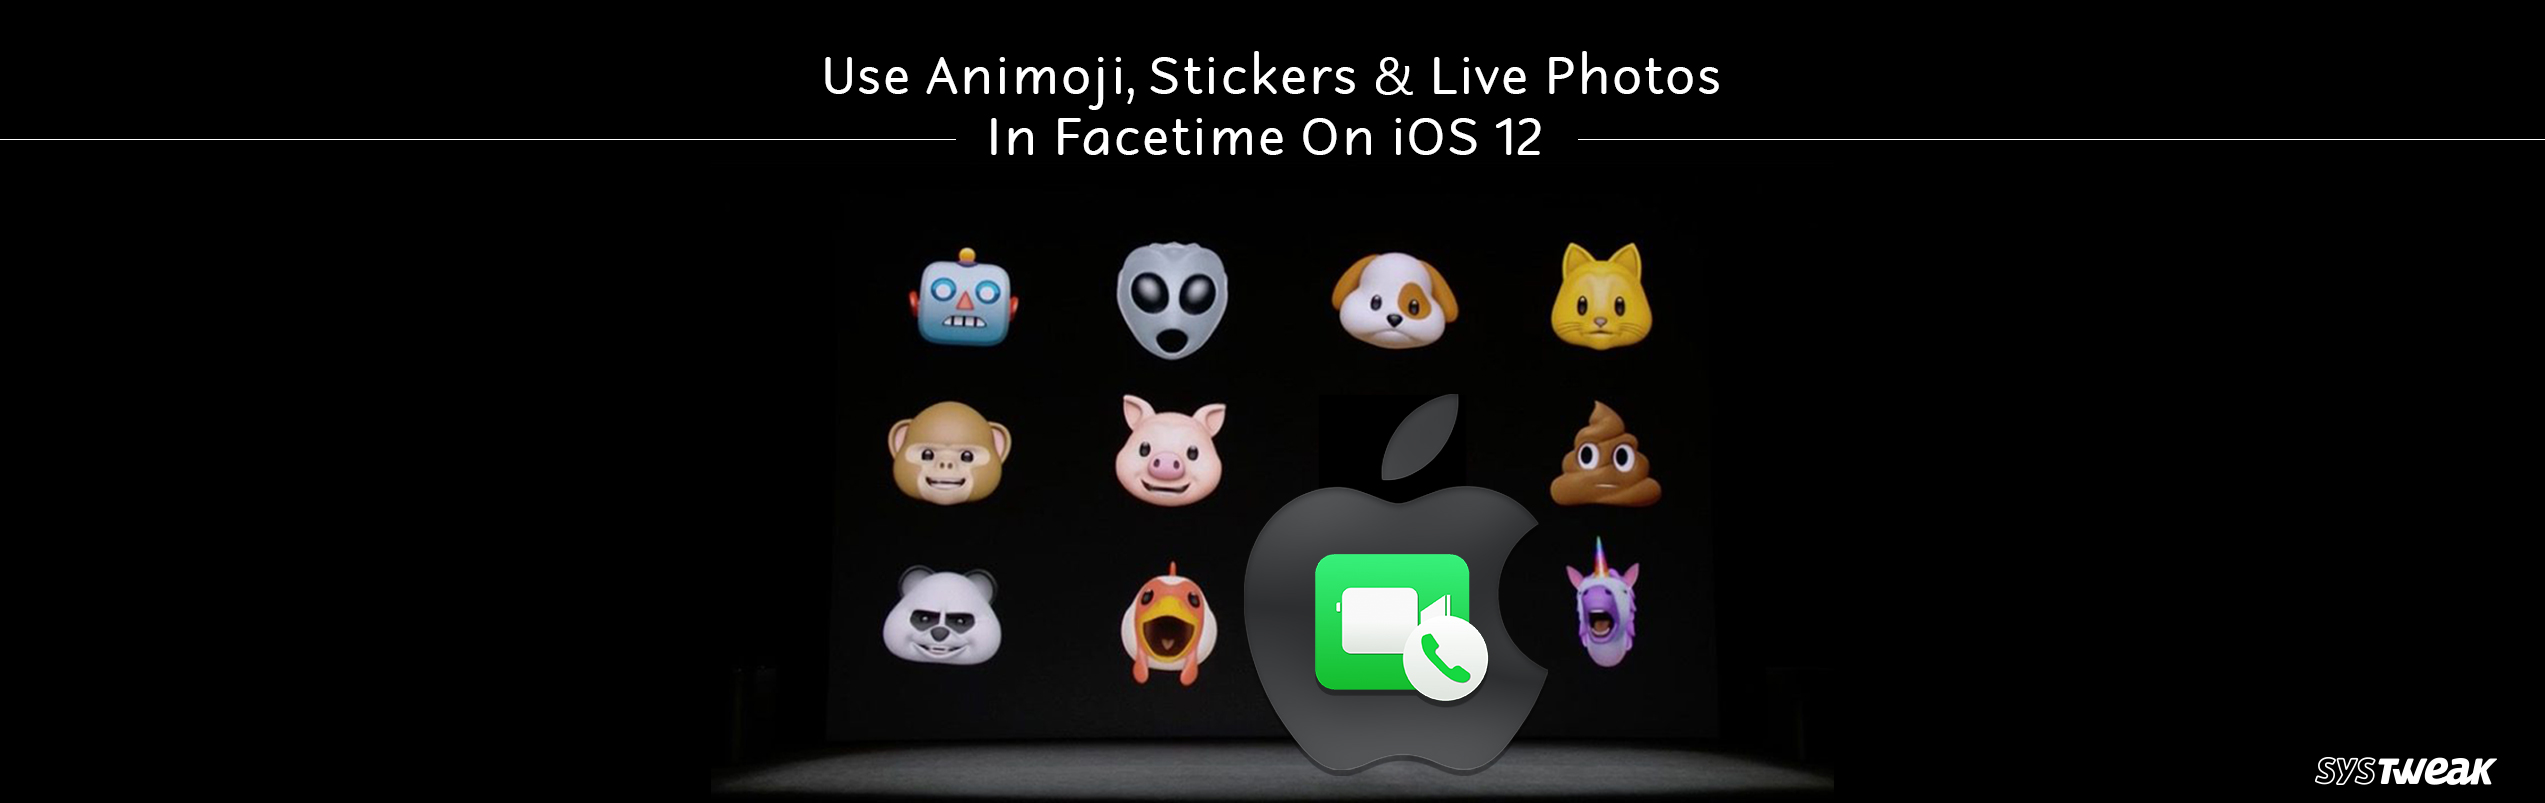 Use Animoji, Stickers, And Live Photos In FaceTime On iOS 12